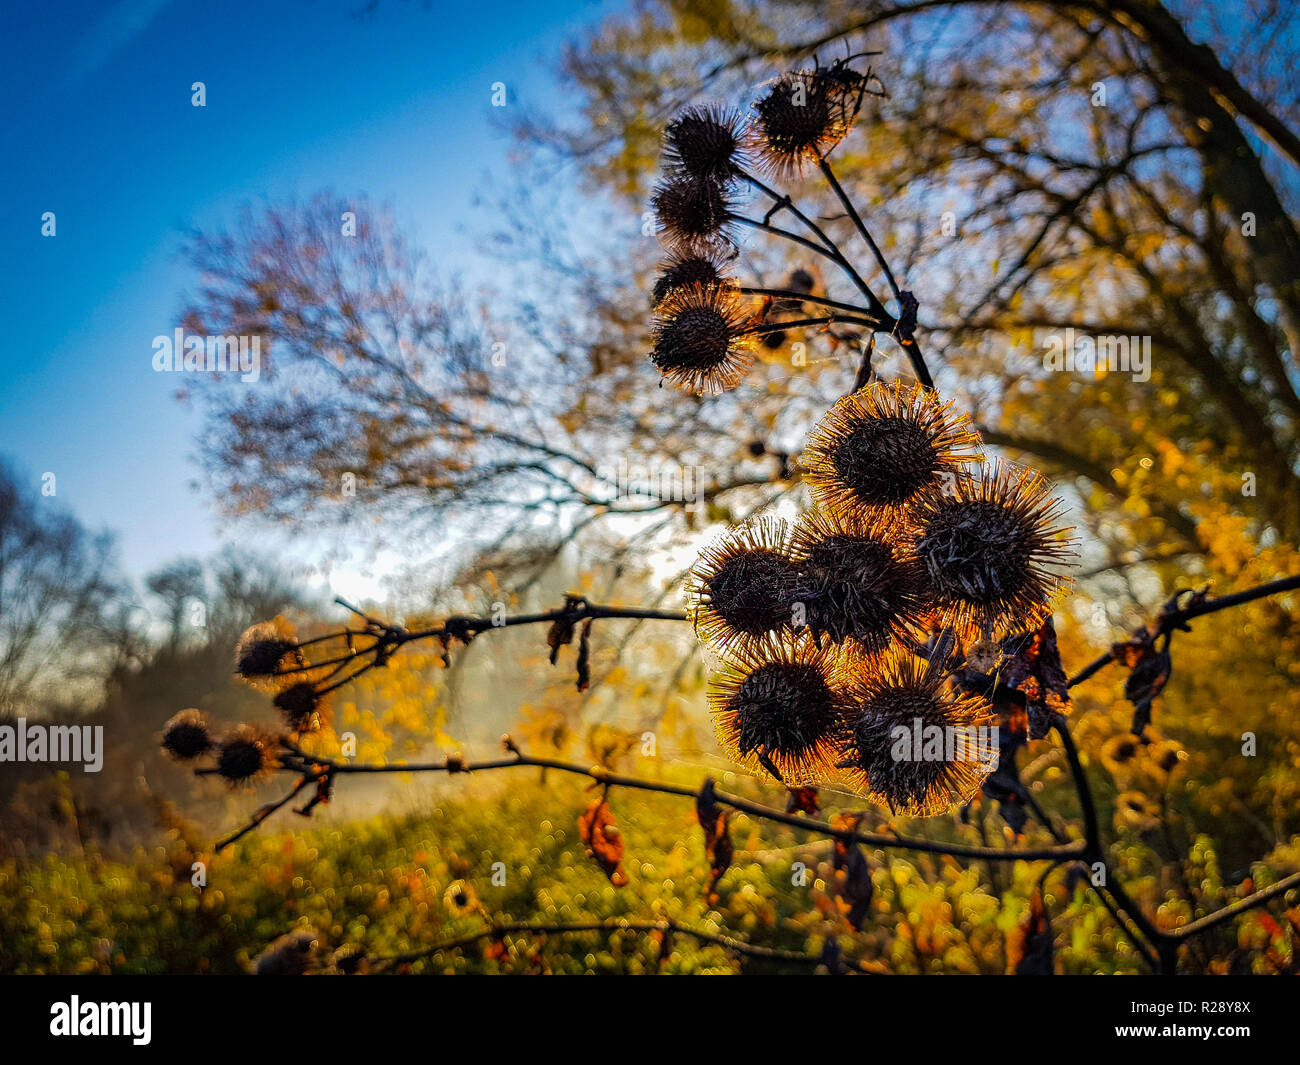 Close of up dried flowers during sunrise before a colorful background Stock Photo